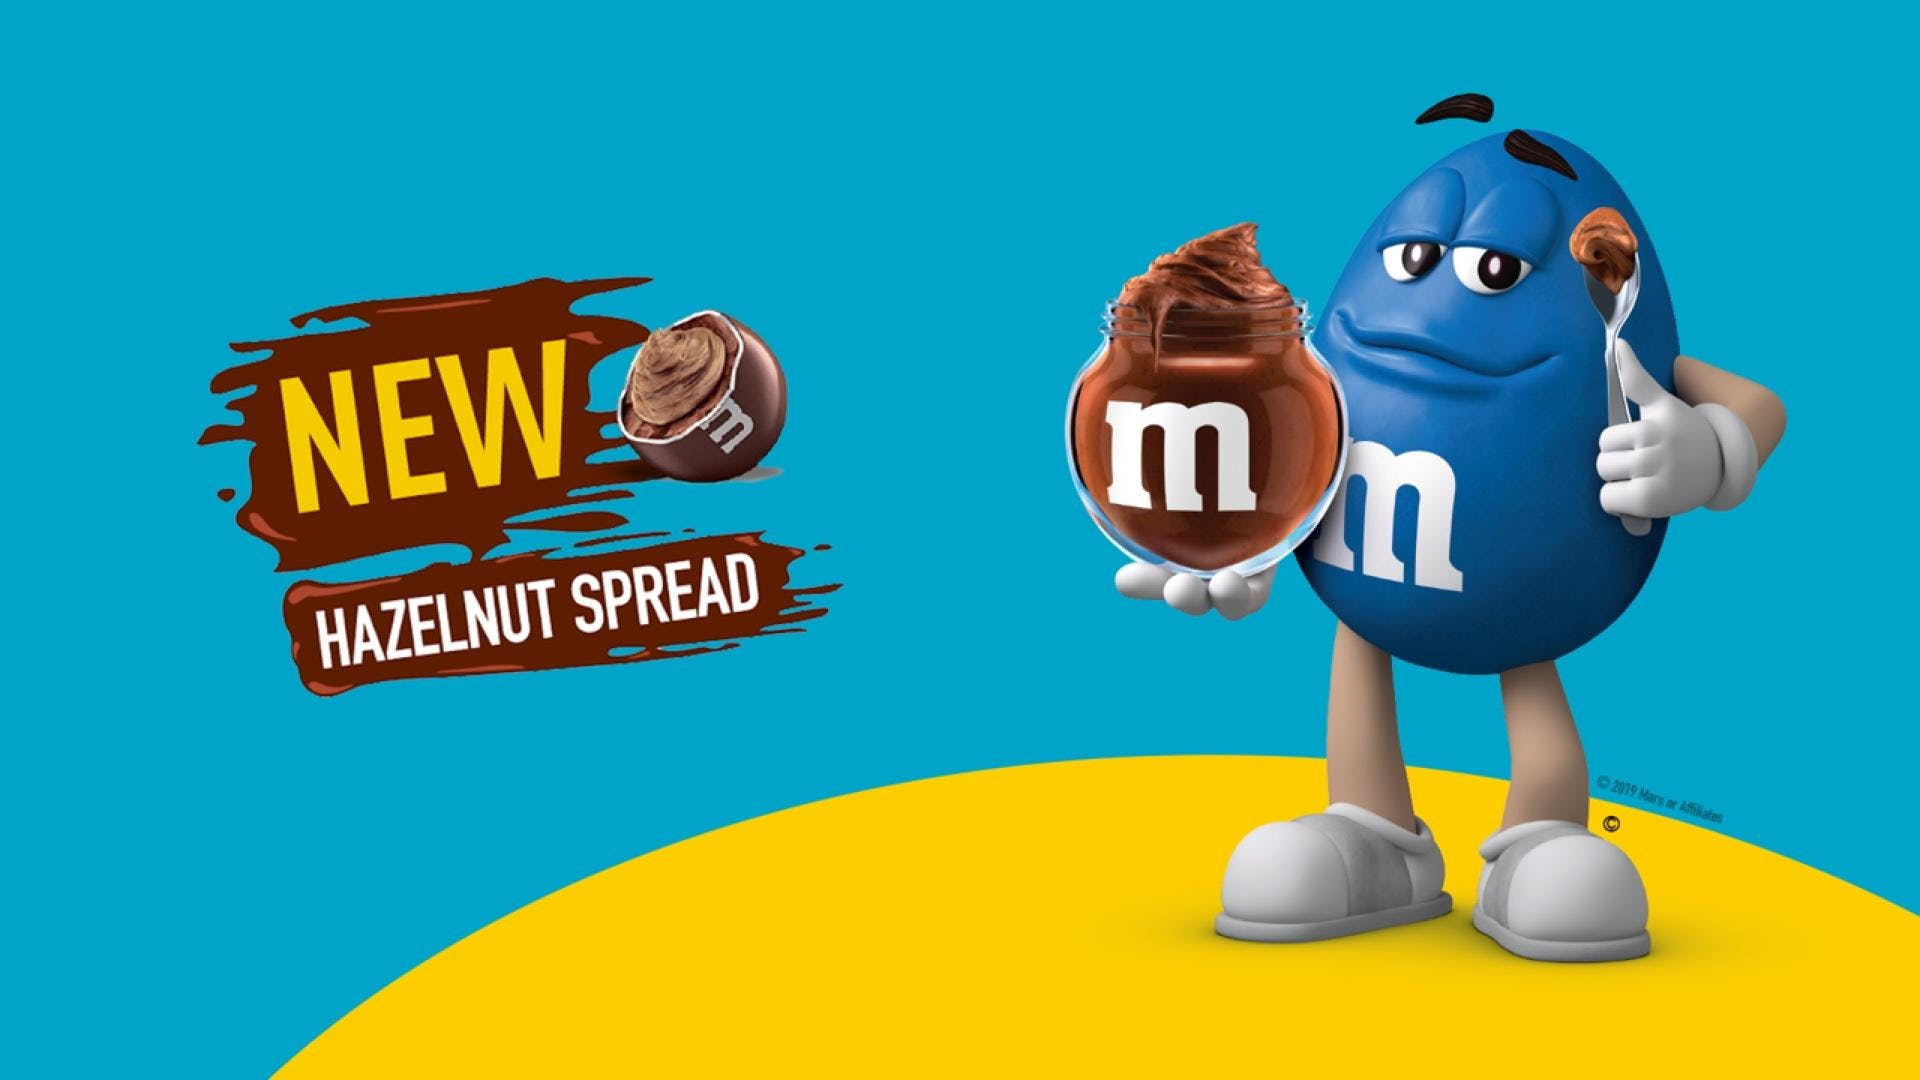 Get Nutty! Hazelnutty! With New M&M'S® Hazelnut Spread candies